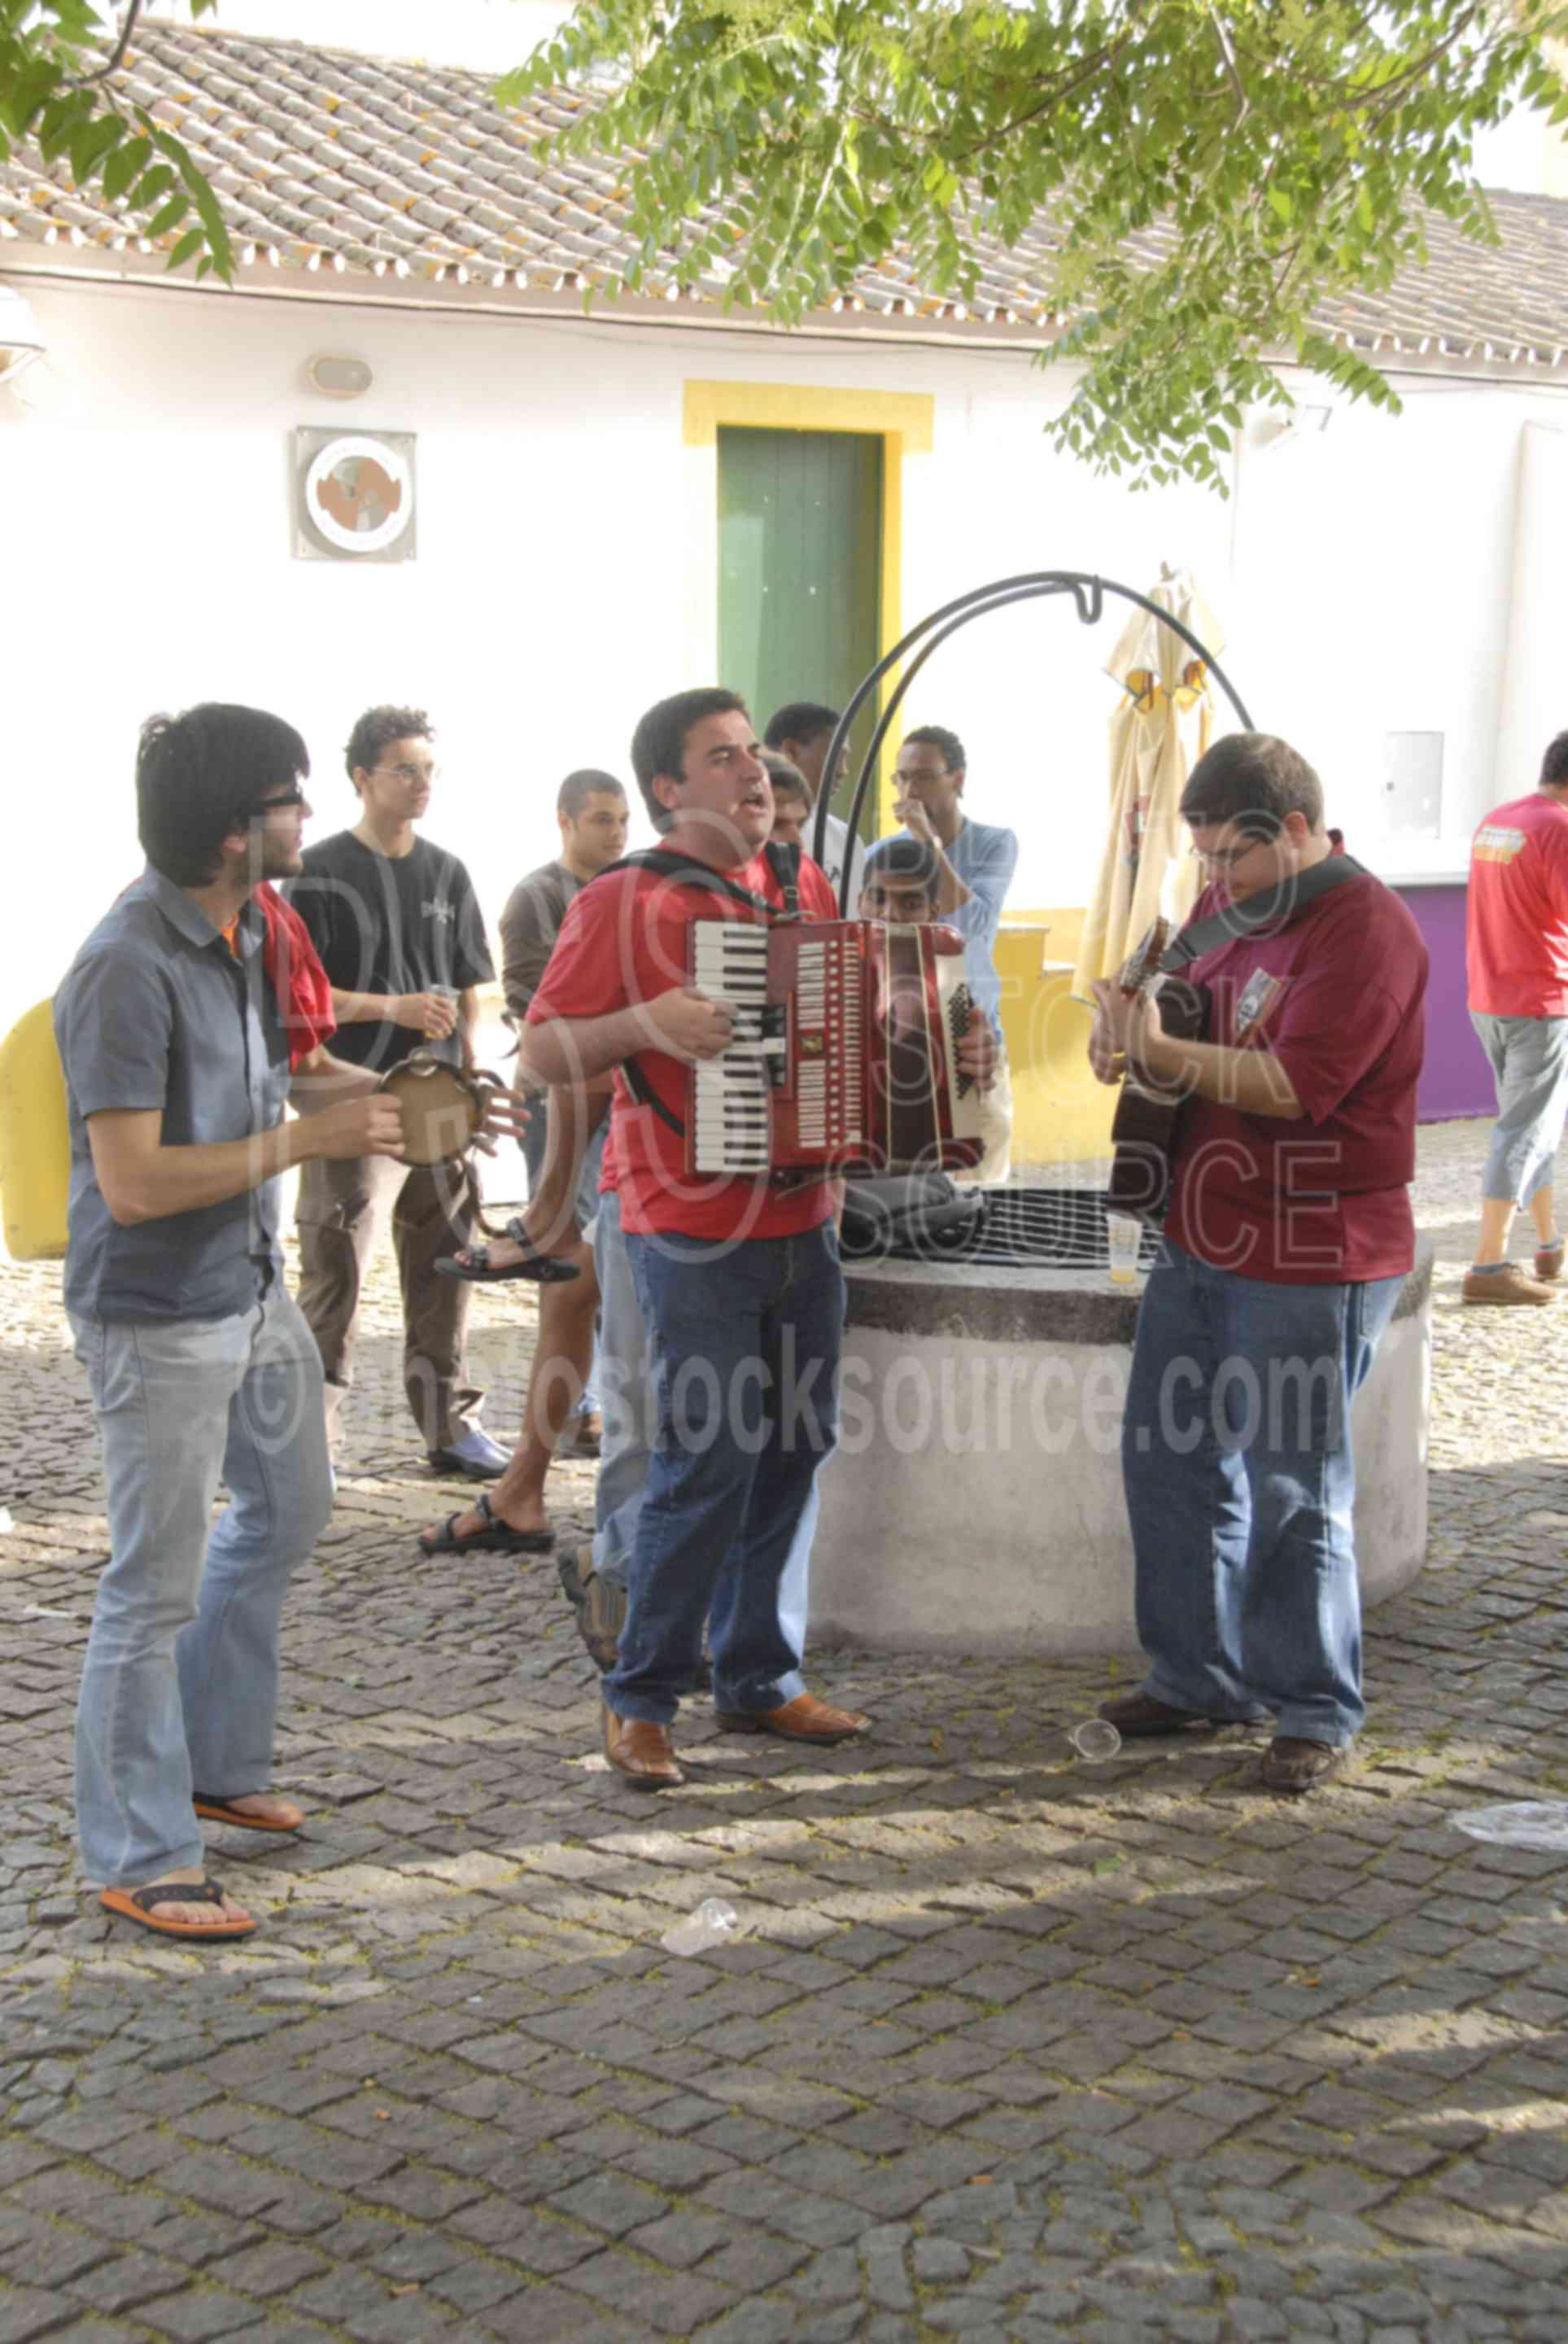 Folk Music Band,student,celebration,band,folk music,anns,sing,singer,singing,dance,dancing,music,funs